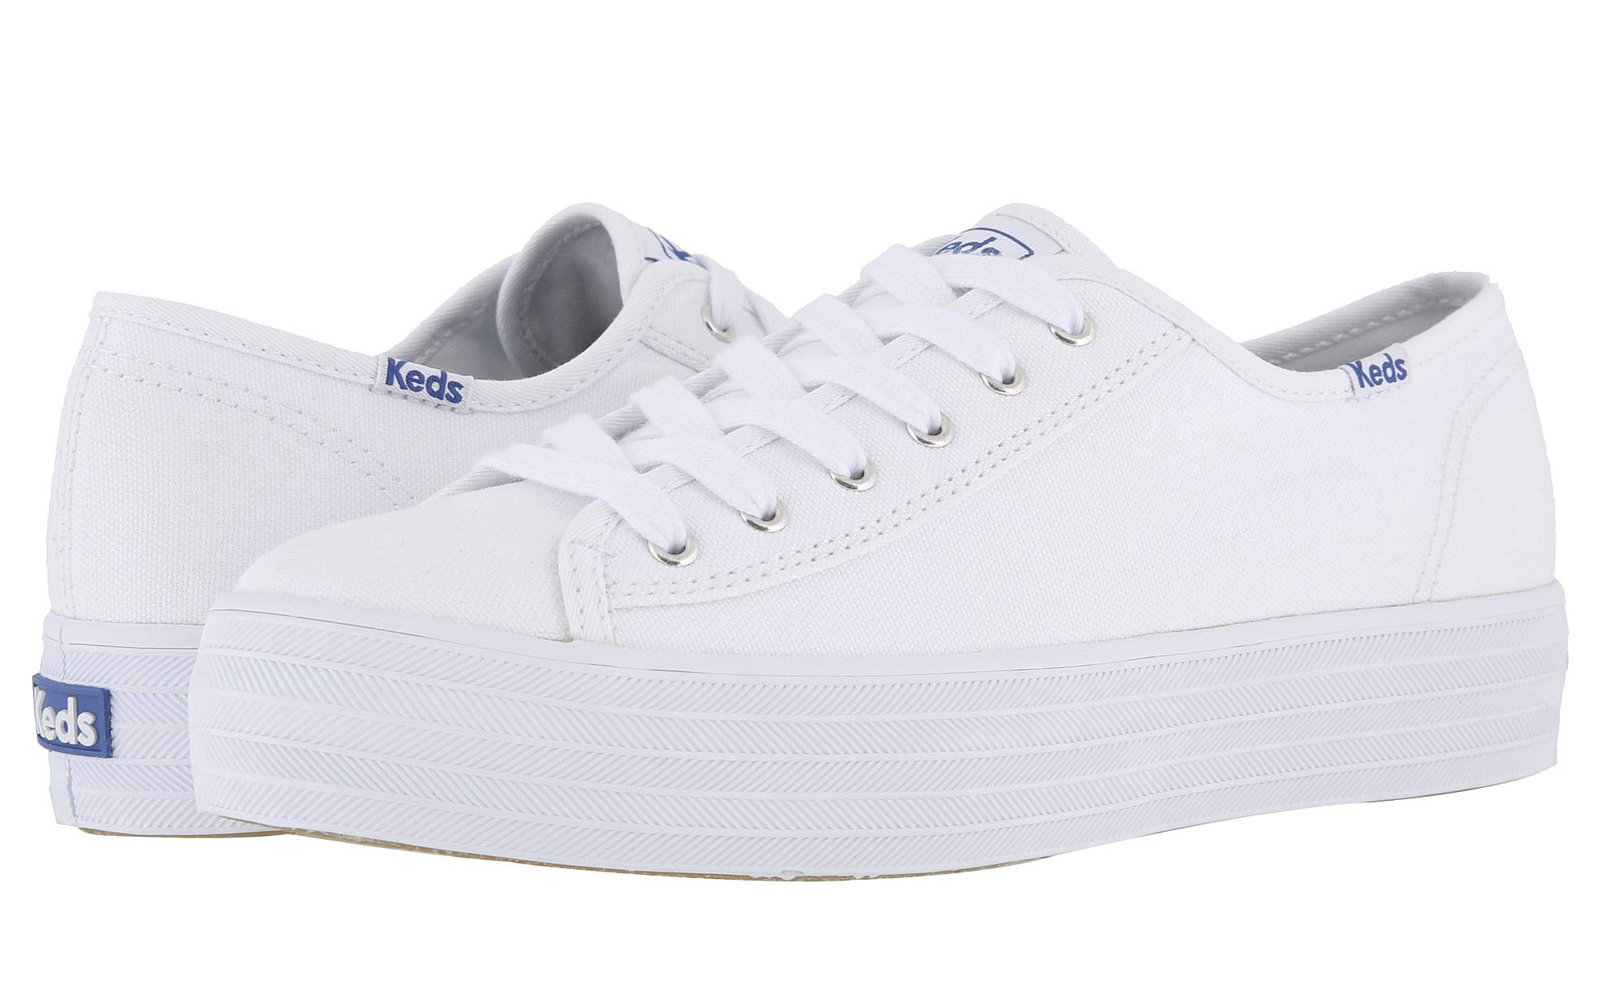 8748deec36 18 White Sneakers for Women That Go With Everything | Travel + Leisure